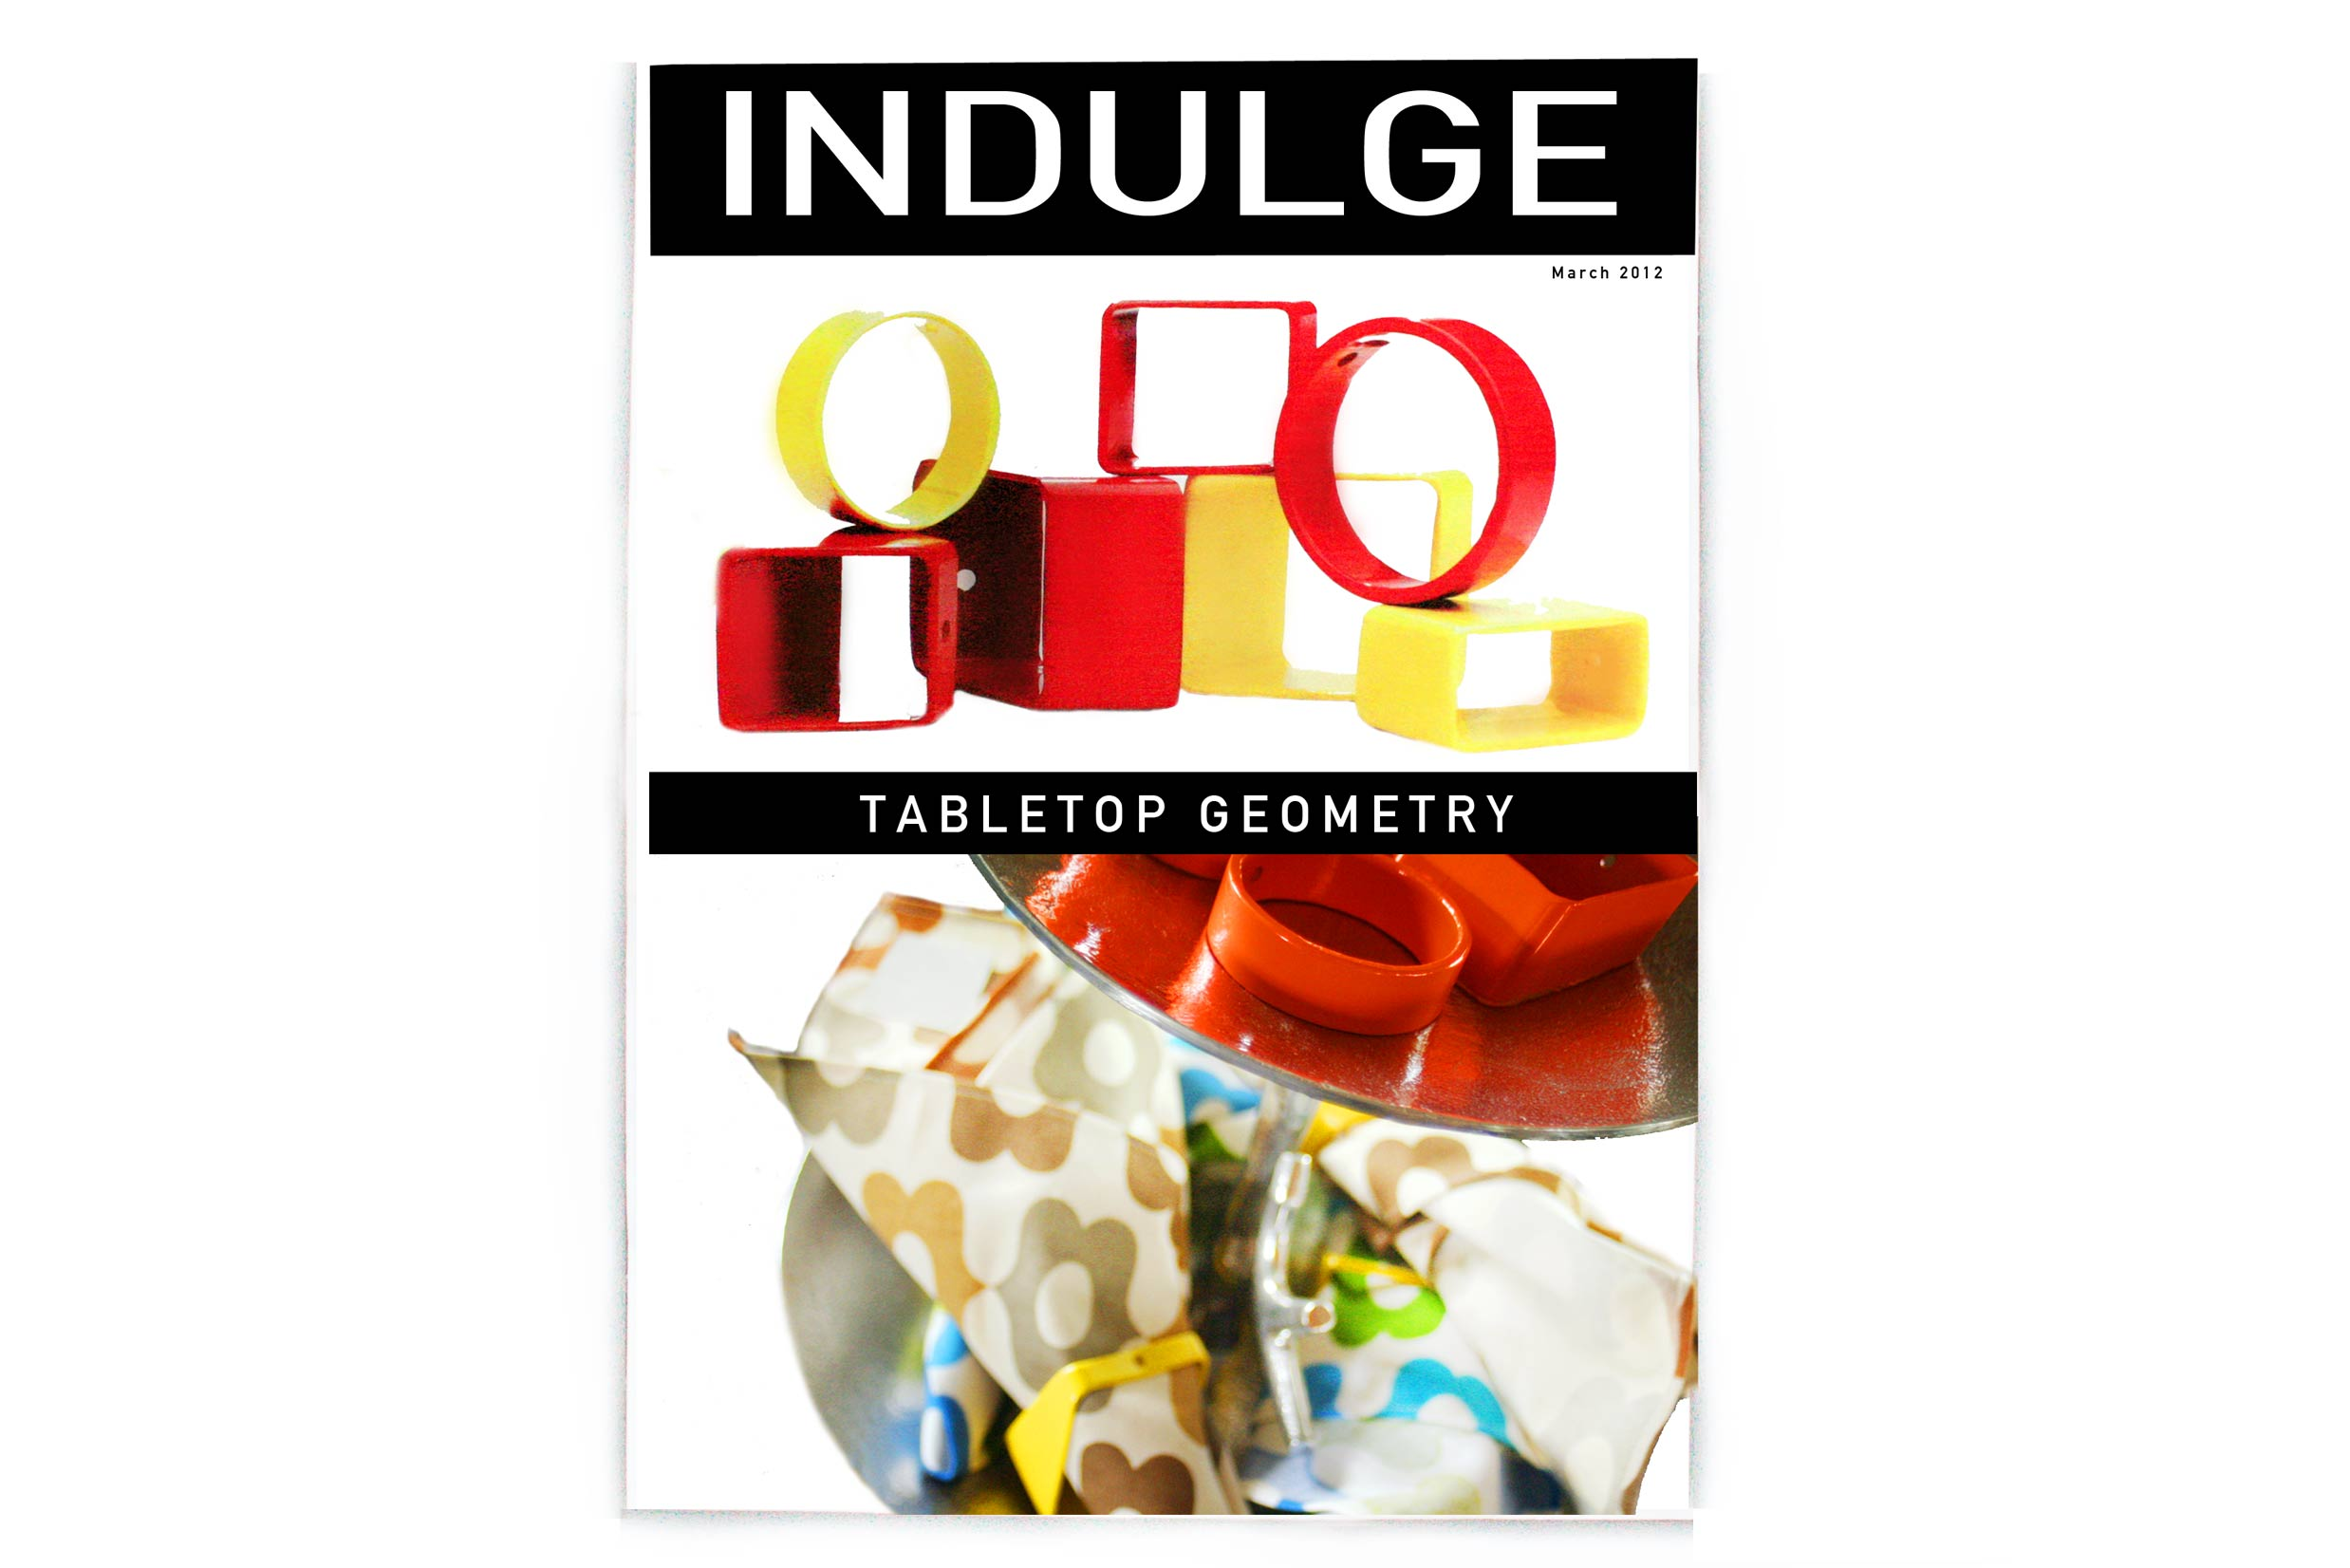 Indulge-Cover-tabletop-geometry-web2